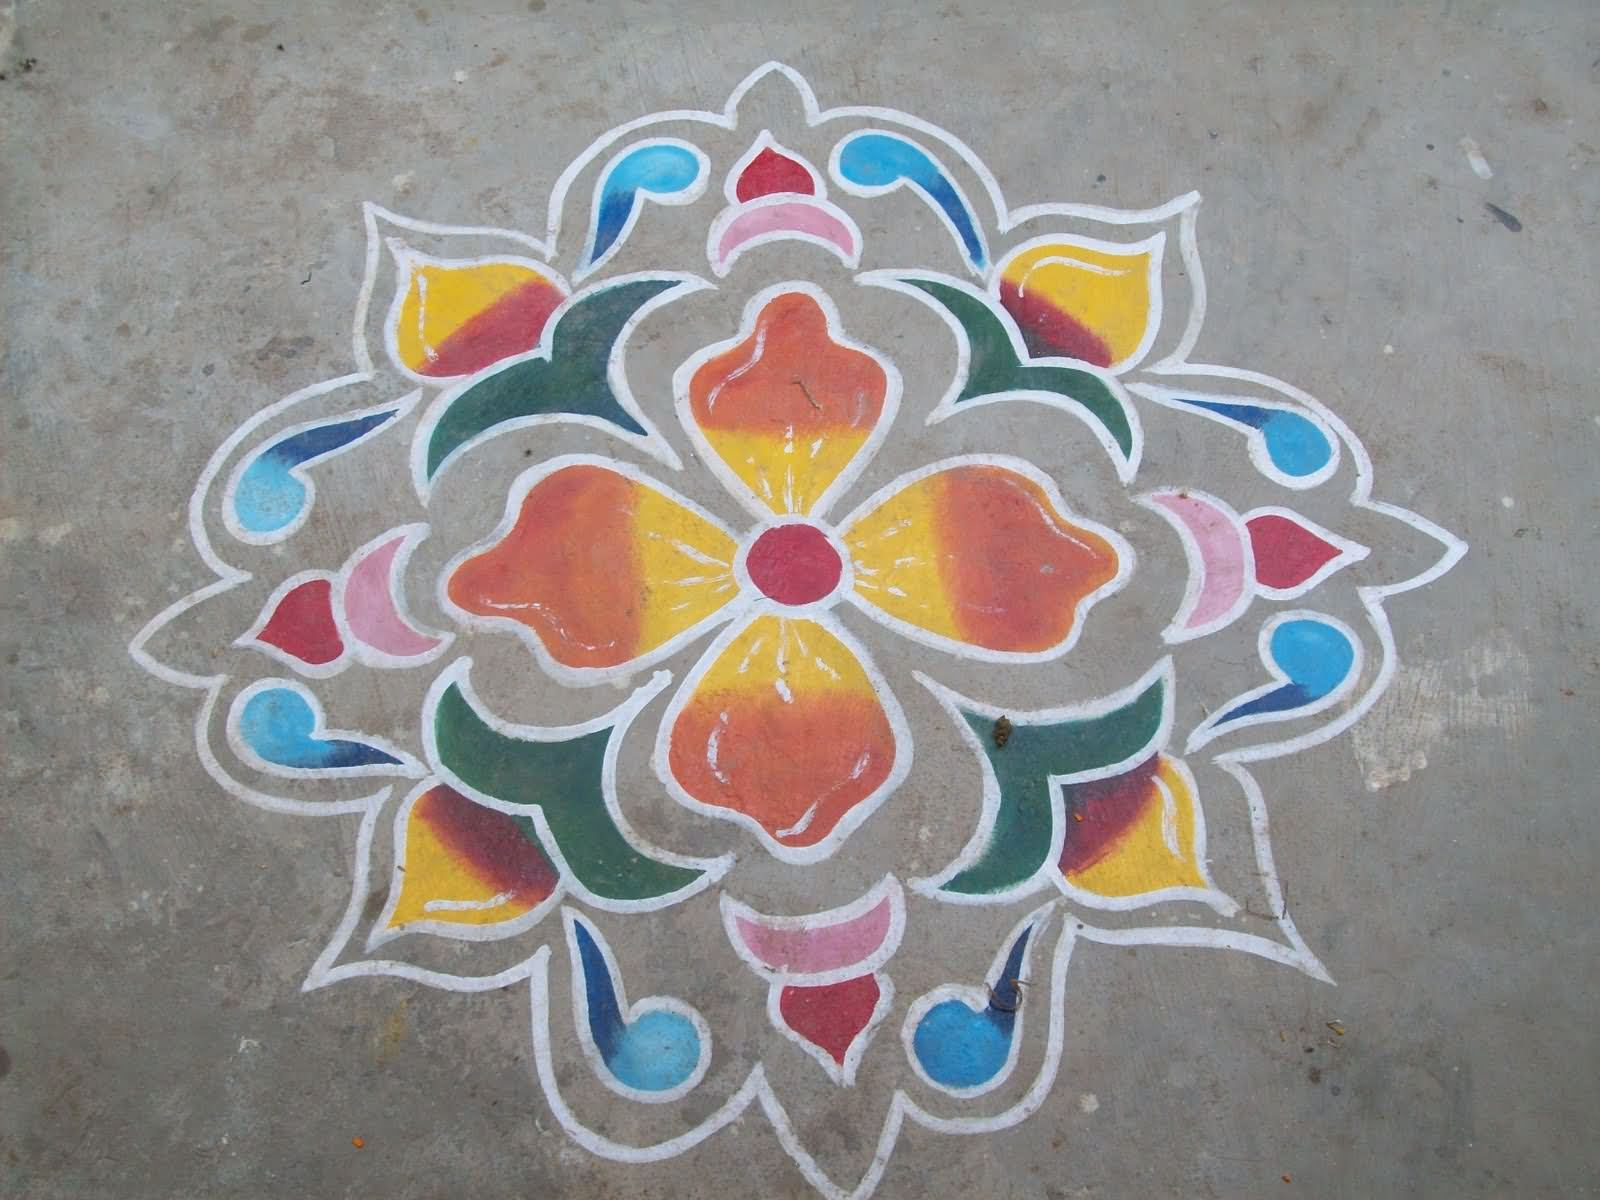 15 Most Beautiful Rangoli Designs For Diwali